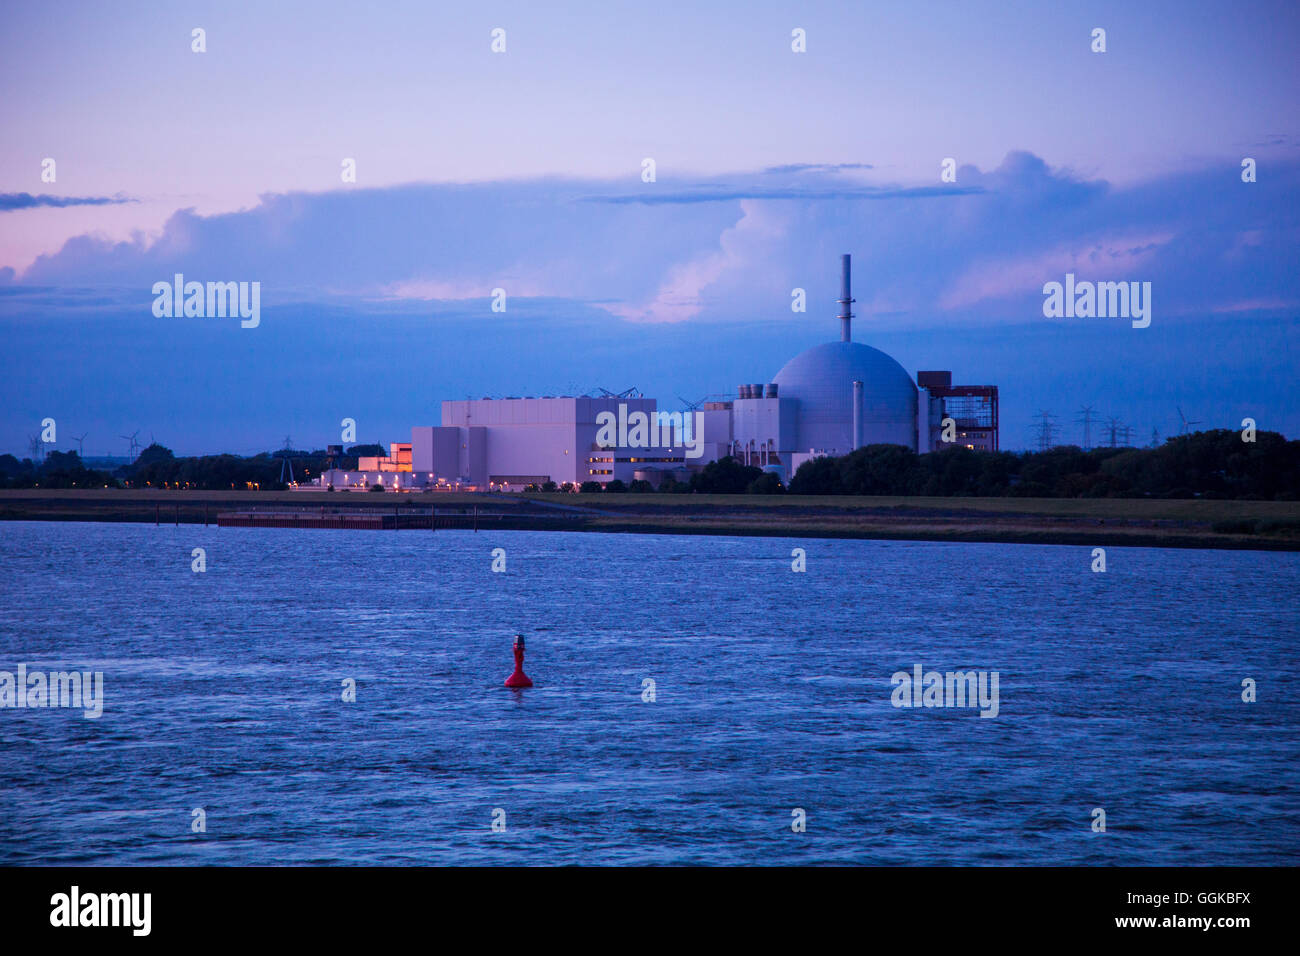 Elbe river and Stade Nuclear Power Plant at dusk, Stade, Lower Saxony, Germany - Stock Image